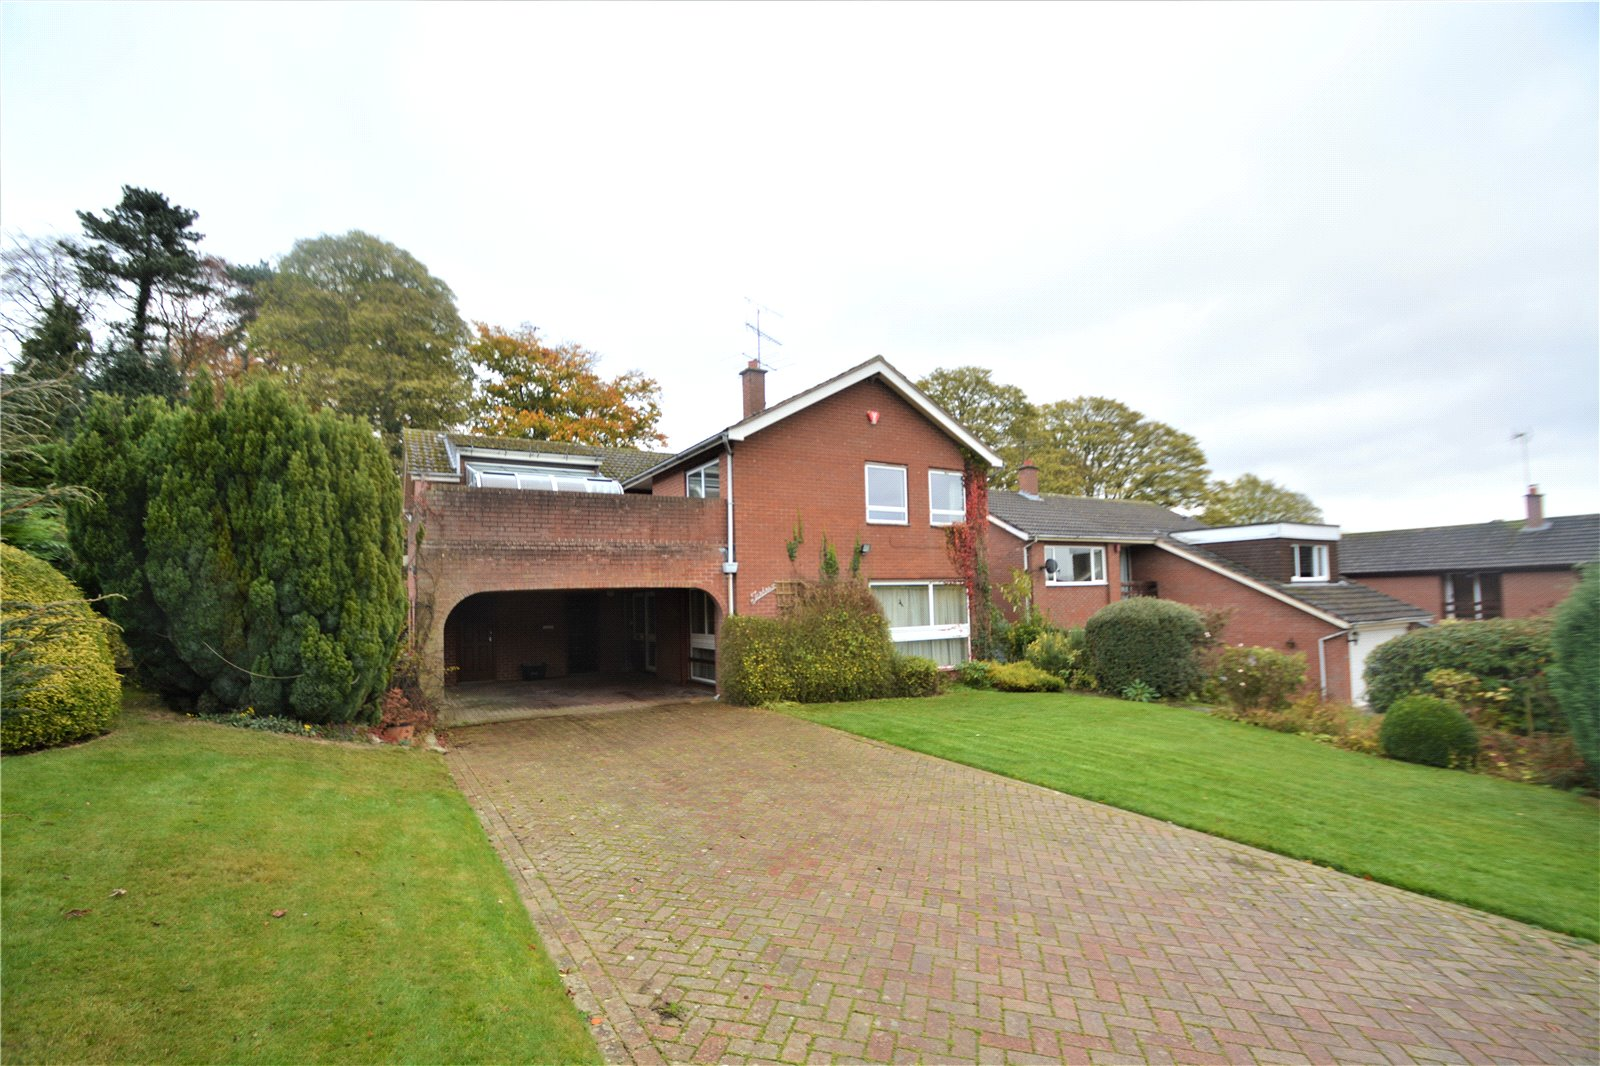 5 Bedrooms Detached House for sale in 10 Sytche Close, Much Wenlock, Shropshire, TF13